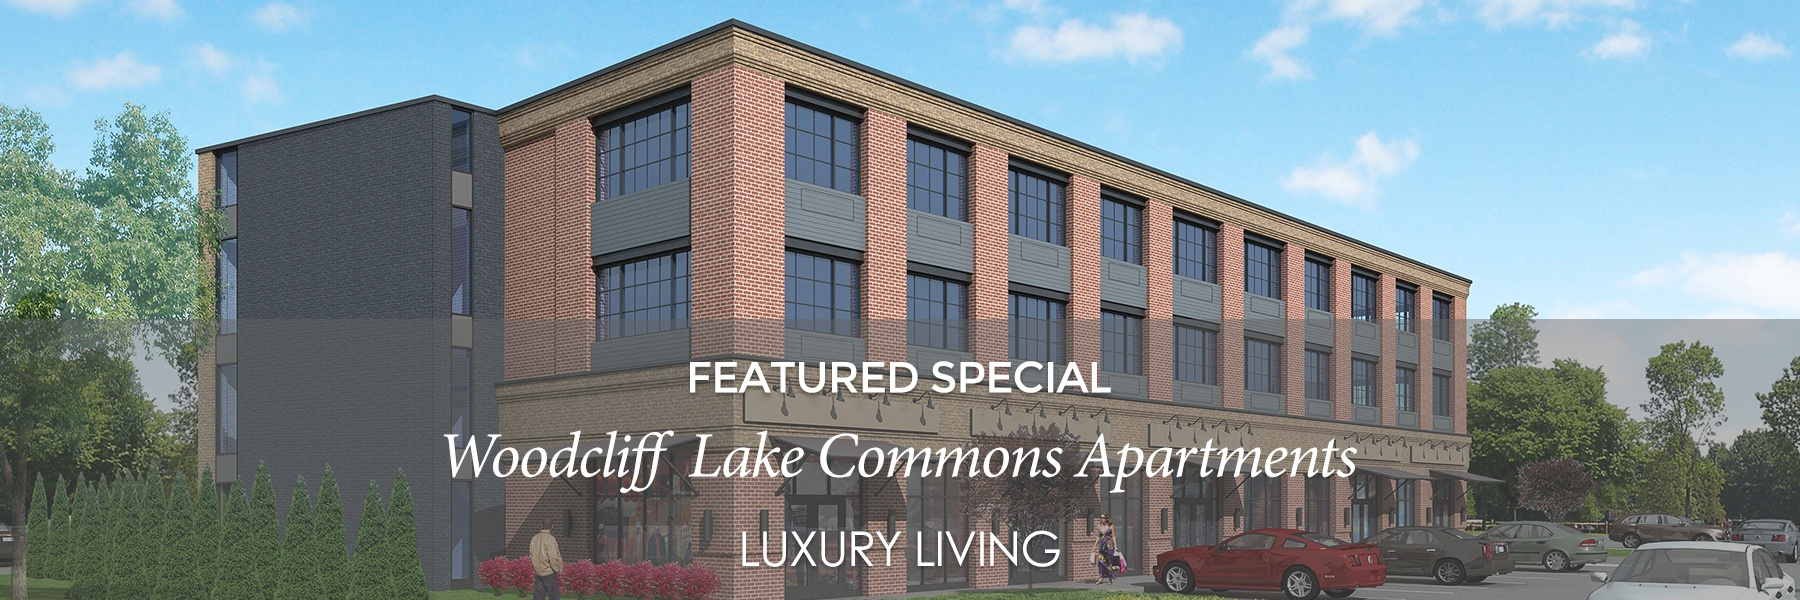 Available luxury apartments for rent in Woodcliff Lake, NJ. Brand New Construction